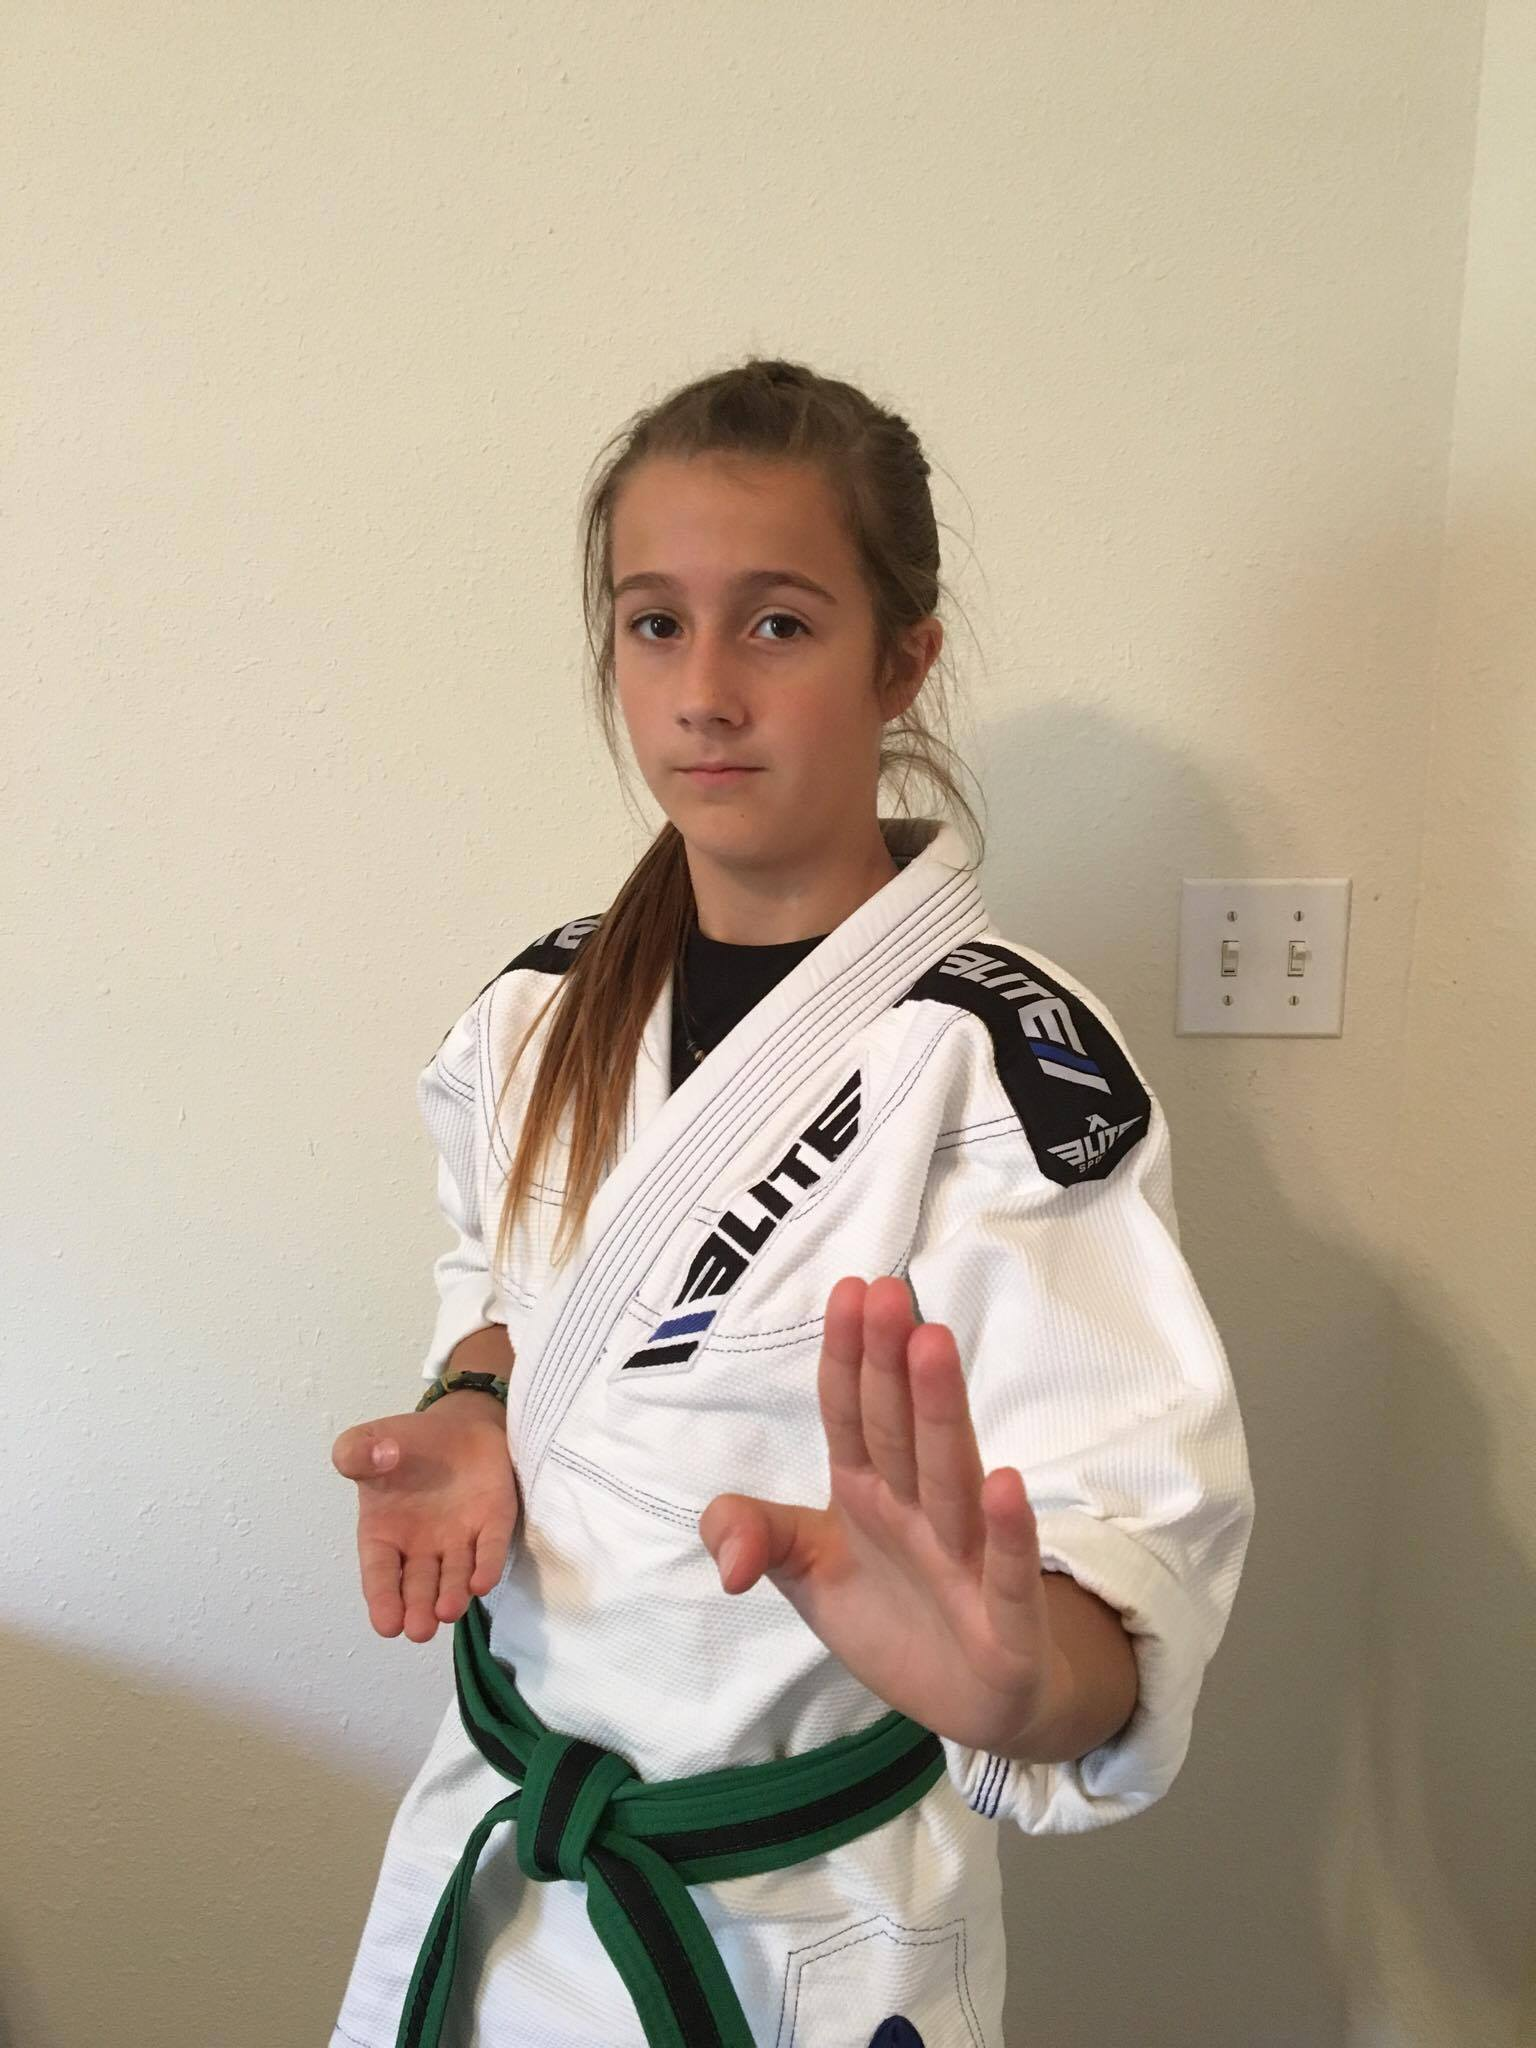 Elite sports Team Elite JUDO Taylin Elizabeth Oberly image6.jpeg